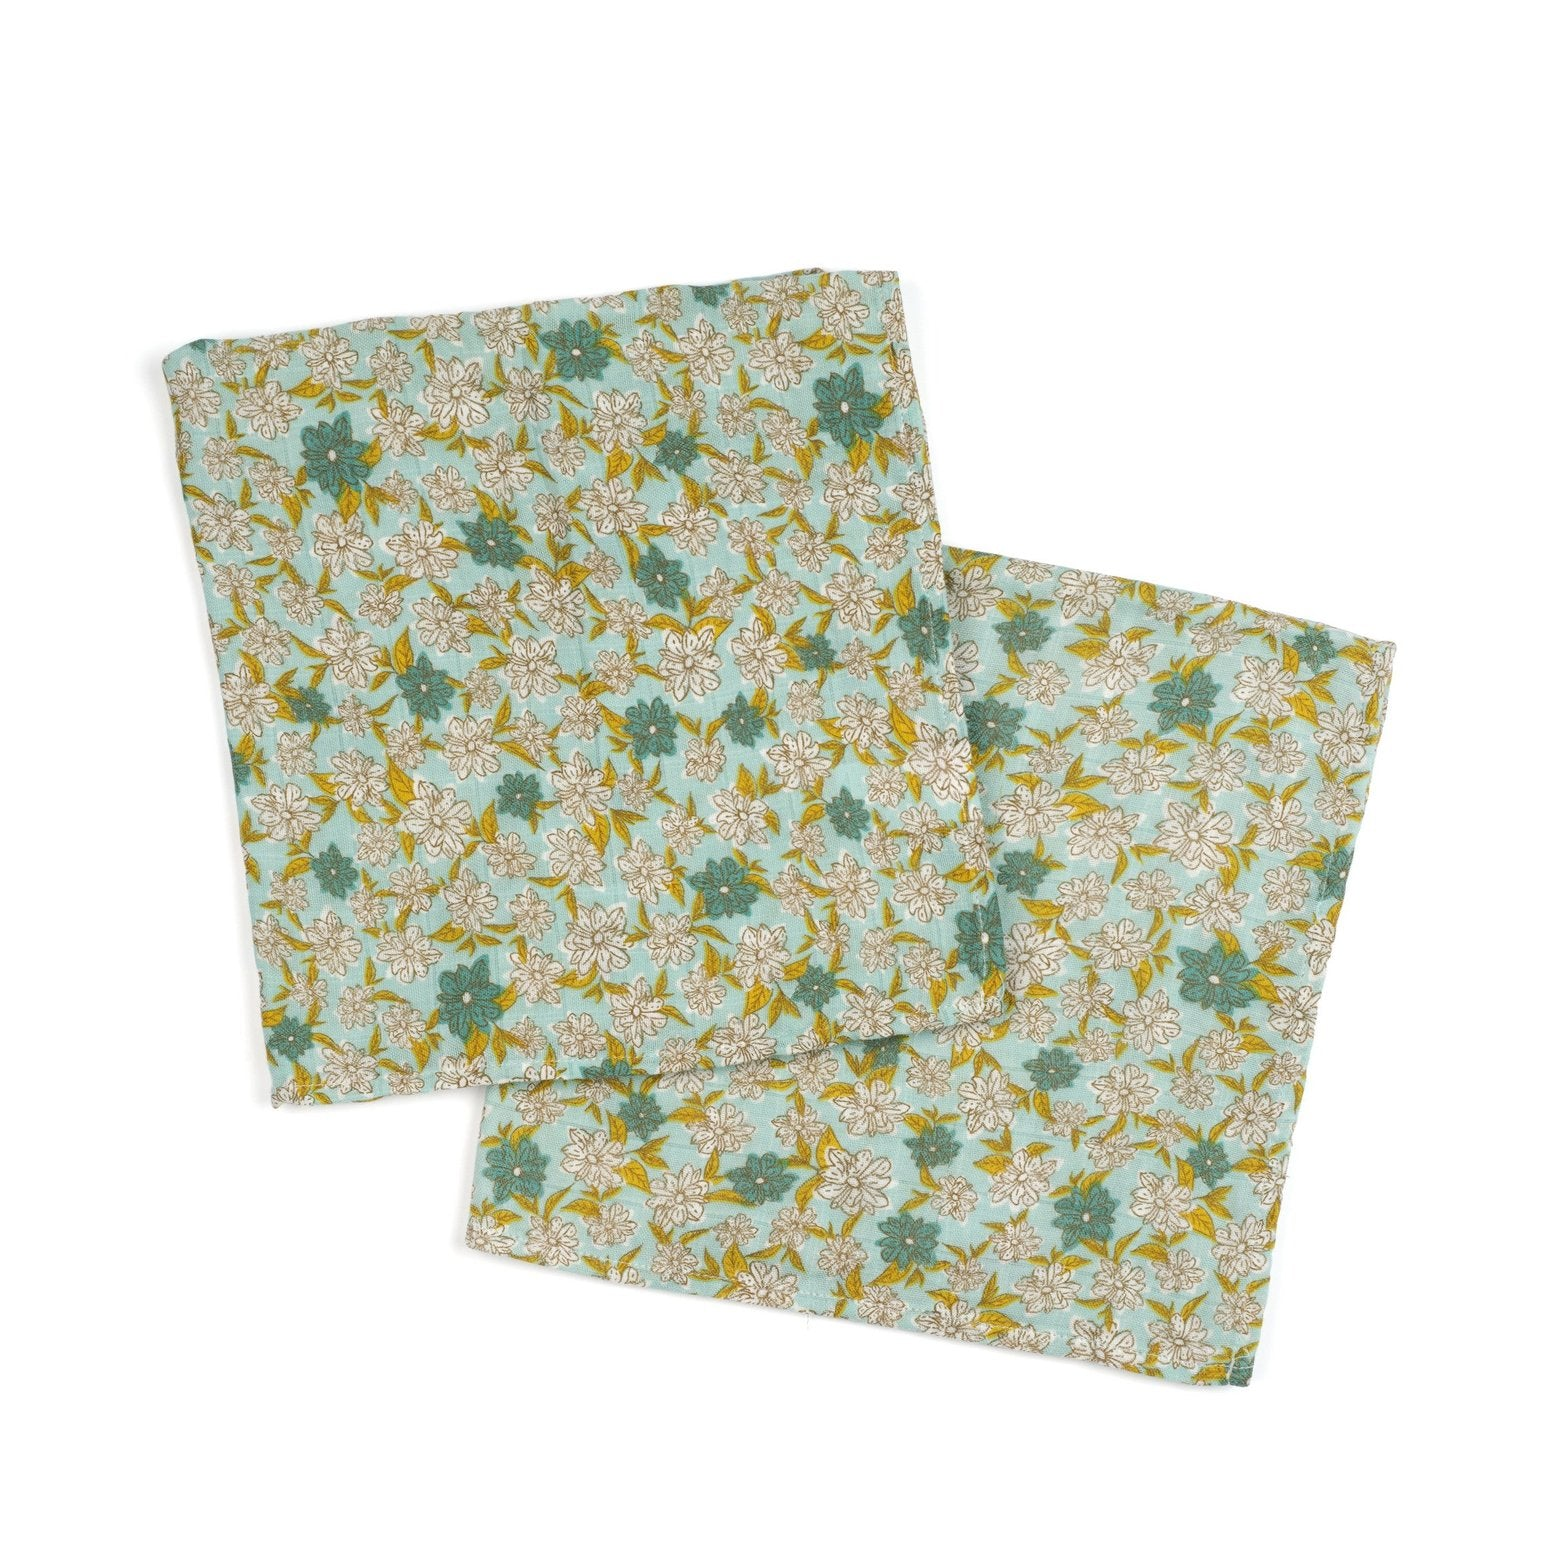 Bamboo + Cotton Bundle of Burpies in Blue Floral